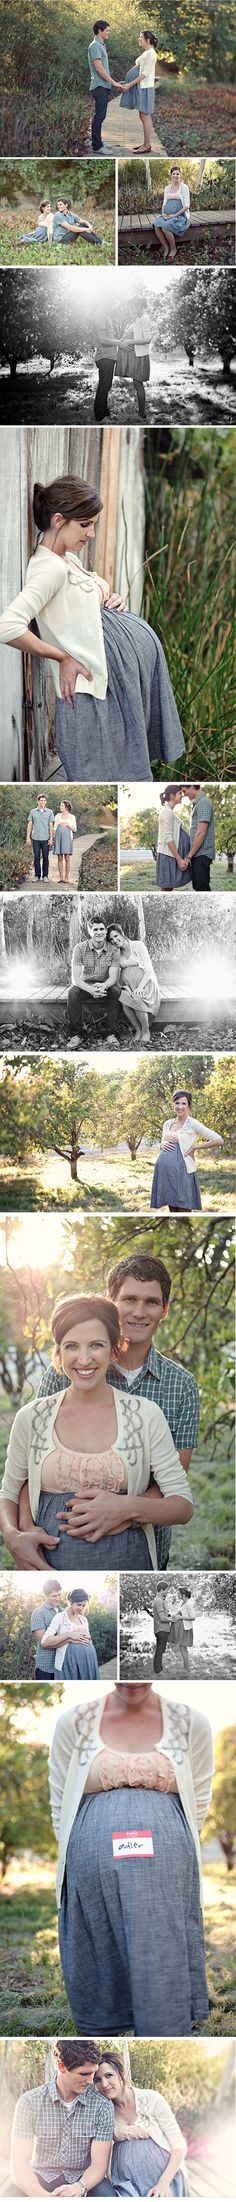 Maternity shoot--sooo cute!